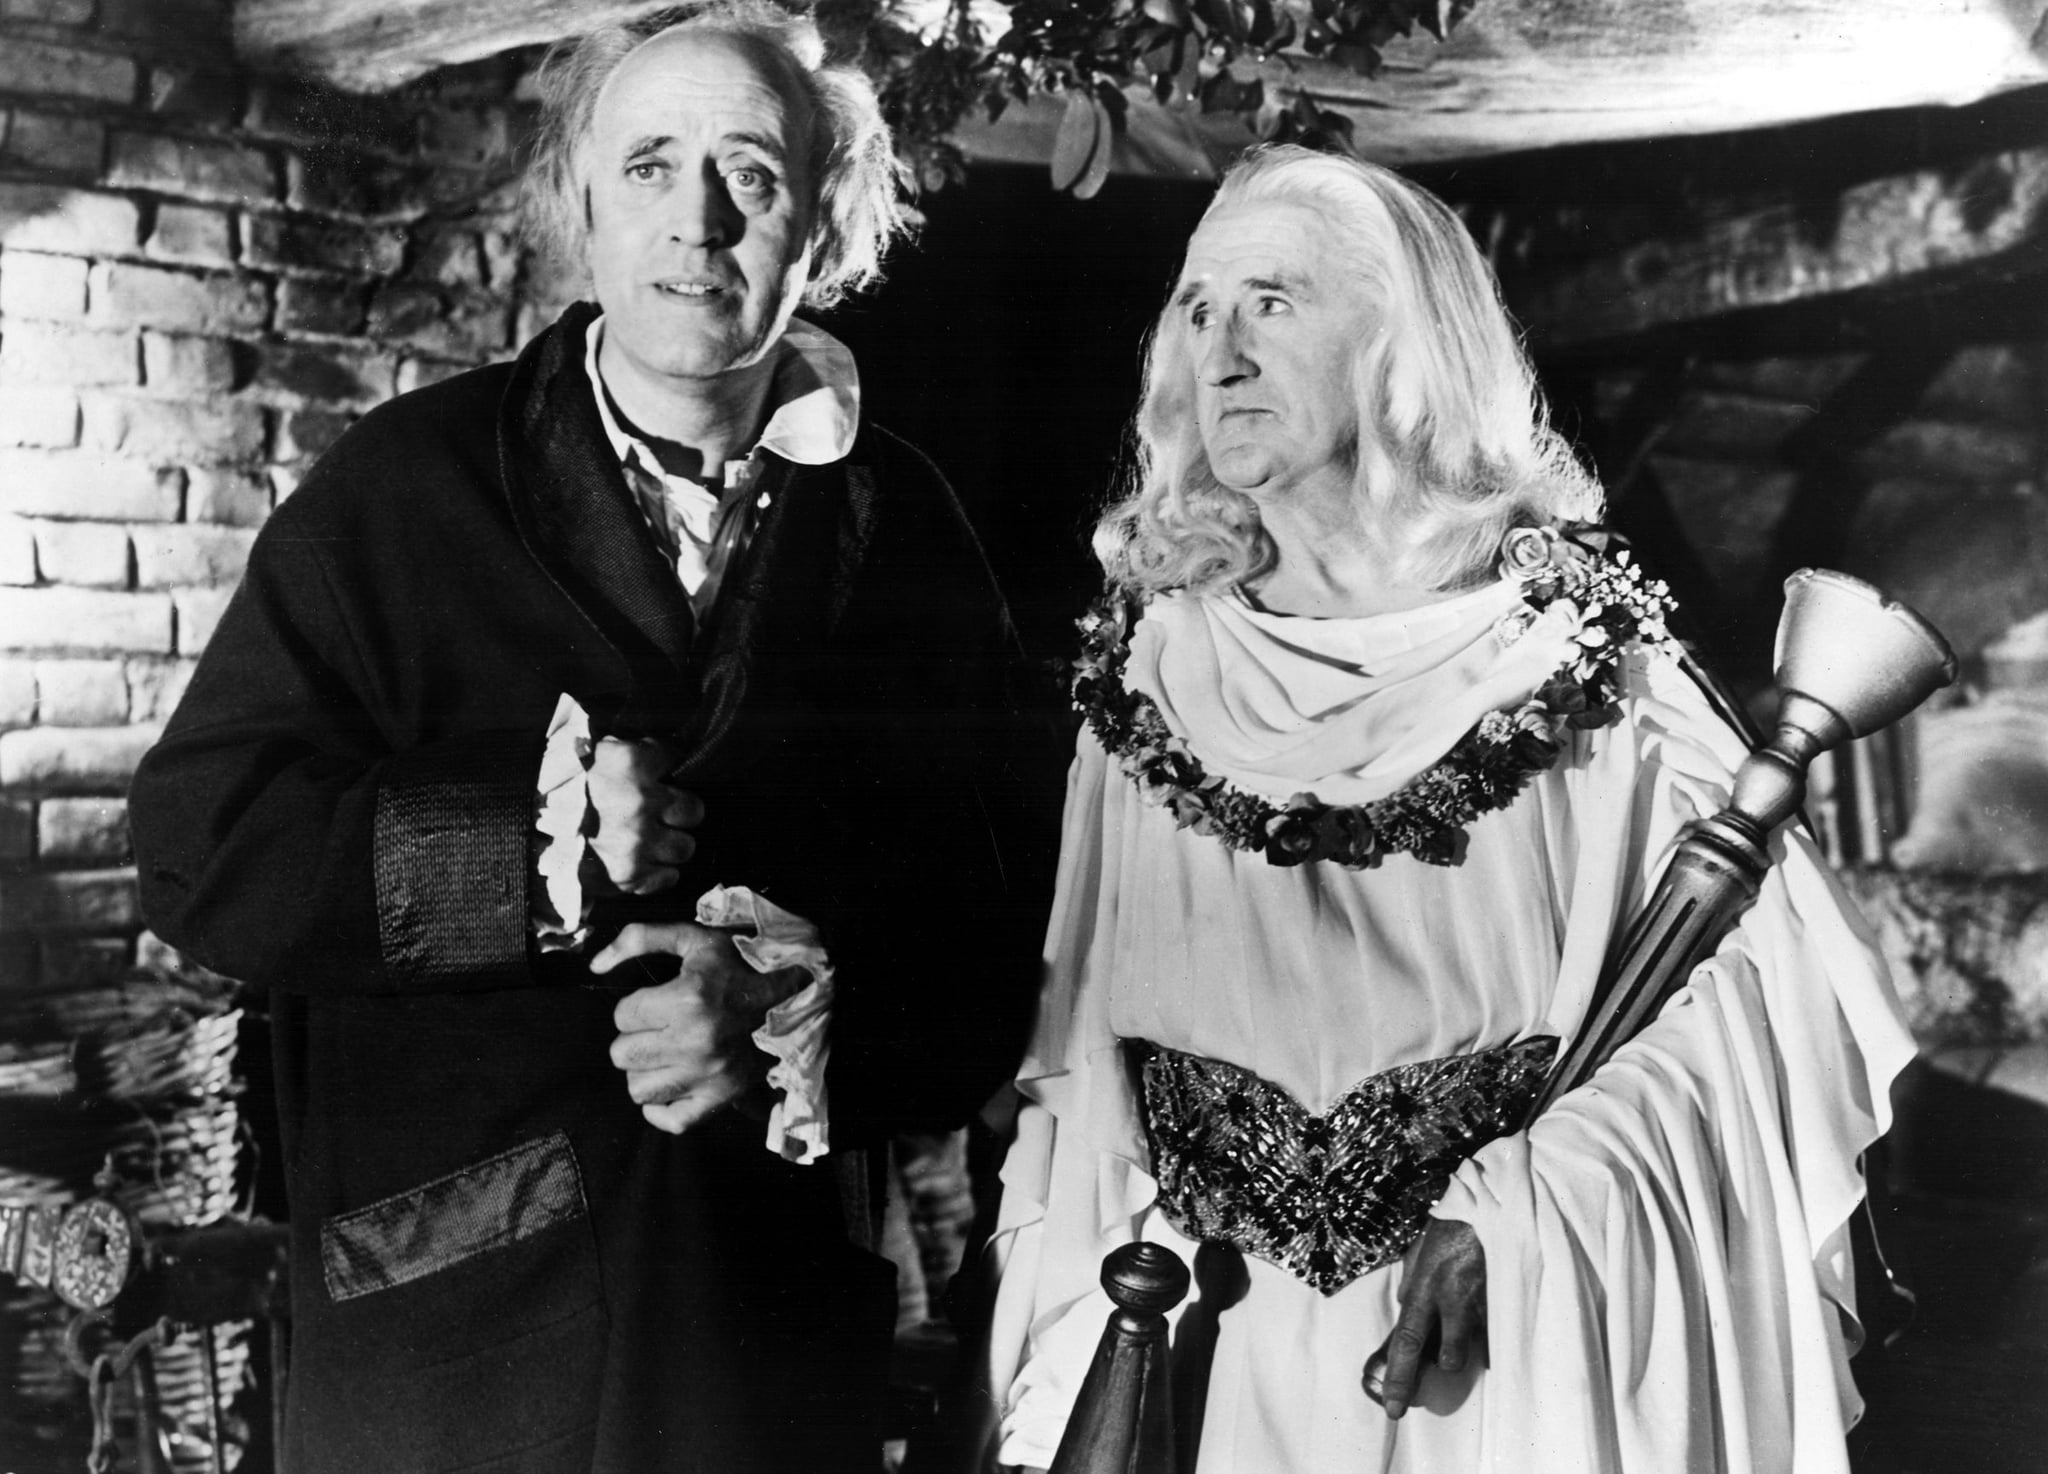 A Christmas Carol 1951.A Christmas Carol 1951 Just In Time For The Holidays